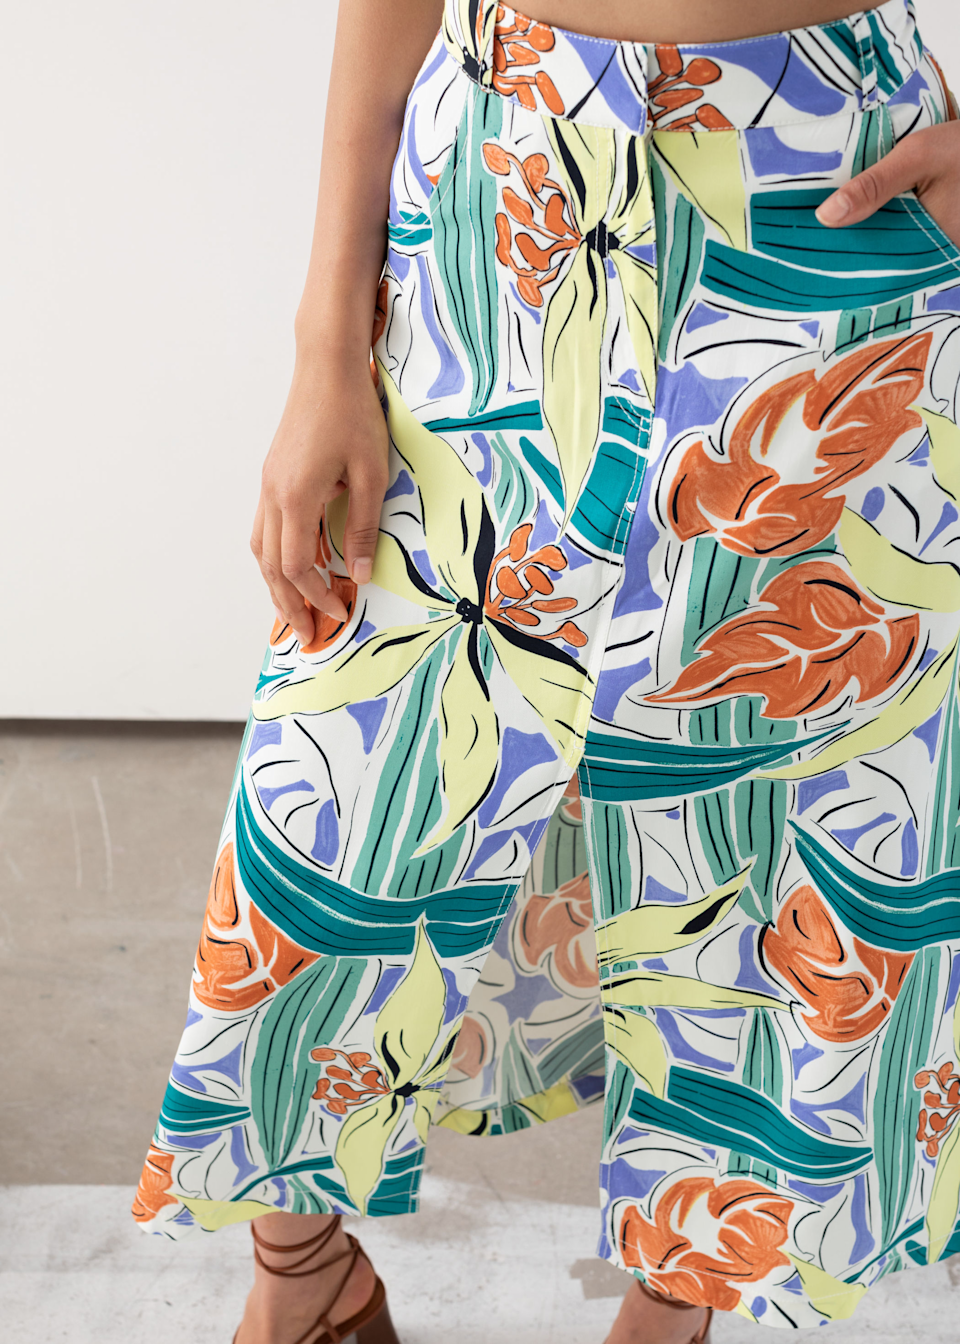 """<h2>Escapist Print</h2> <br>You're not alone in wanting a vacation. After being indoors this long, we could all use an escape. In the meantime, transport yourself to a beach by stocking up on all the tropical prints available.<br><br><strong>& Other Stories</strong> Front Slit A-Line Midi Skirt, $, available at <a href=""""https://go.skimresources.com/?id=30283X879131&url=https%3A%2F%2Fwww.stories.com%2Fen_usd%2Fclothing%2Fskirts%2Fmidi-skirts%2Fproduct.front-slit-a-line-midi-skirt-white.0747247003.html"""" rel=""""nofollow noopener"""" target=""""_blank"""" data-ylk=""""slk:& Other Stories"""" class=""""link rapid-noclick-resp"""">& Other Stories</a><br>"""